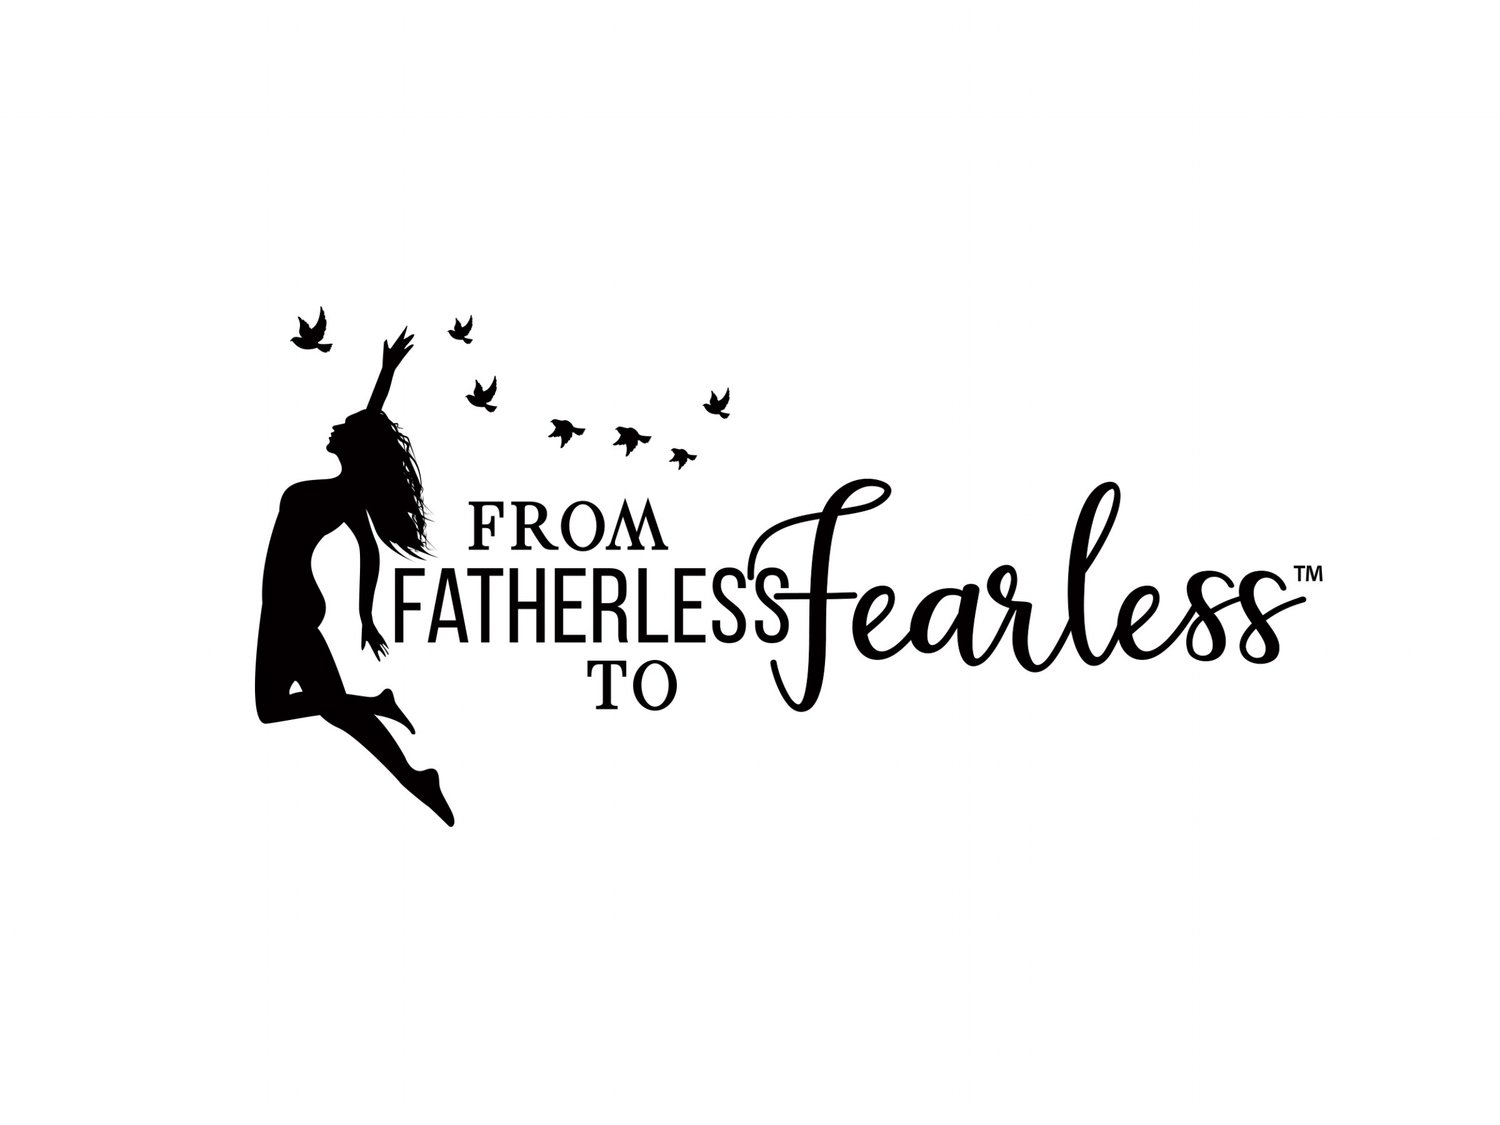 From Fatherless To Fearless